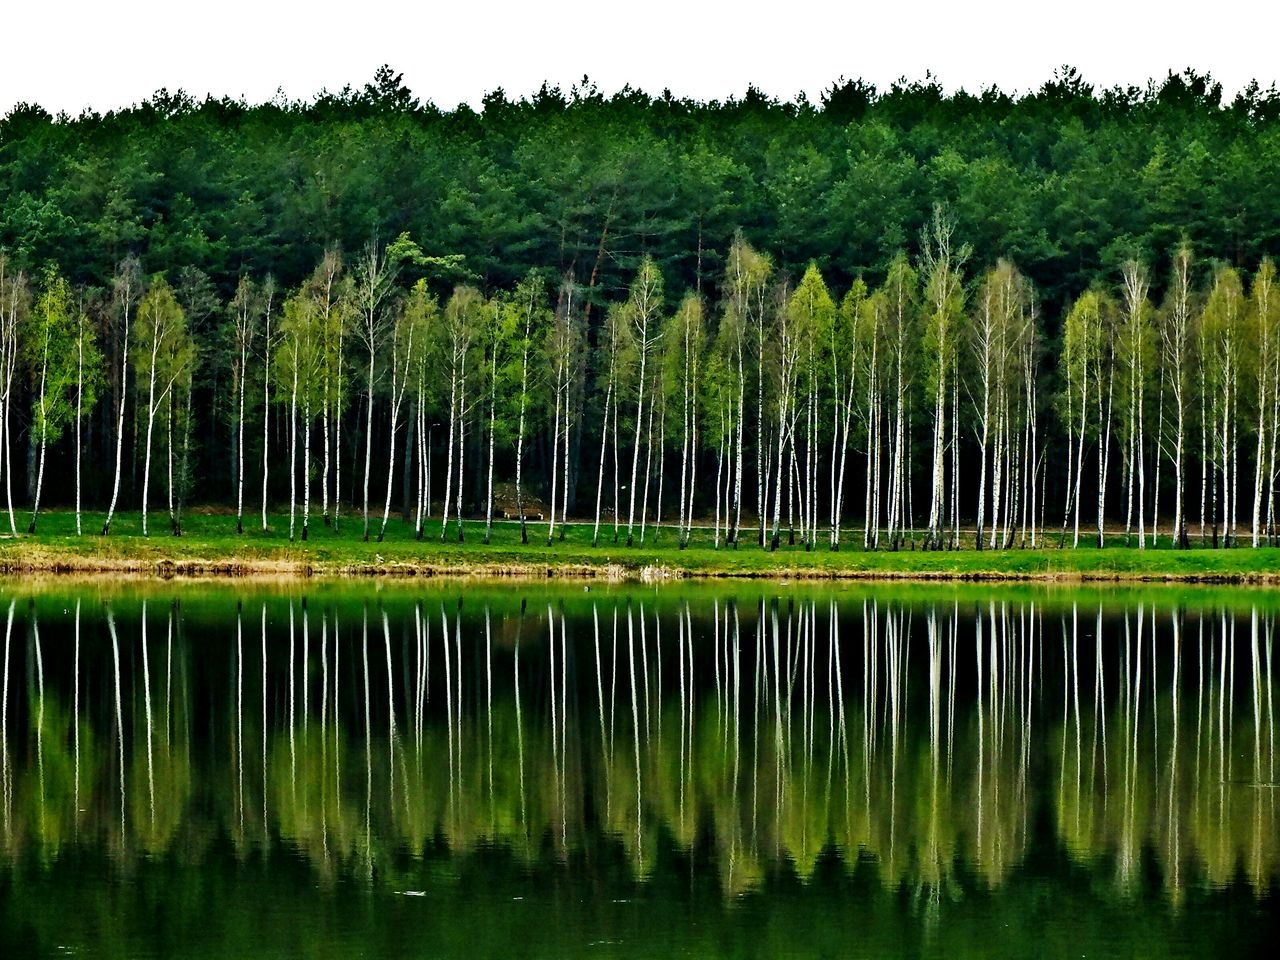 Beauty In Nature Green Color Tranquility Springtime Tranquil Scene Lake Tree Water Birch Tree Birch Birches Mirror Reflection Mirrored Mirror Effect Mirroring In Water Mirrorlake Mirror Lake